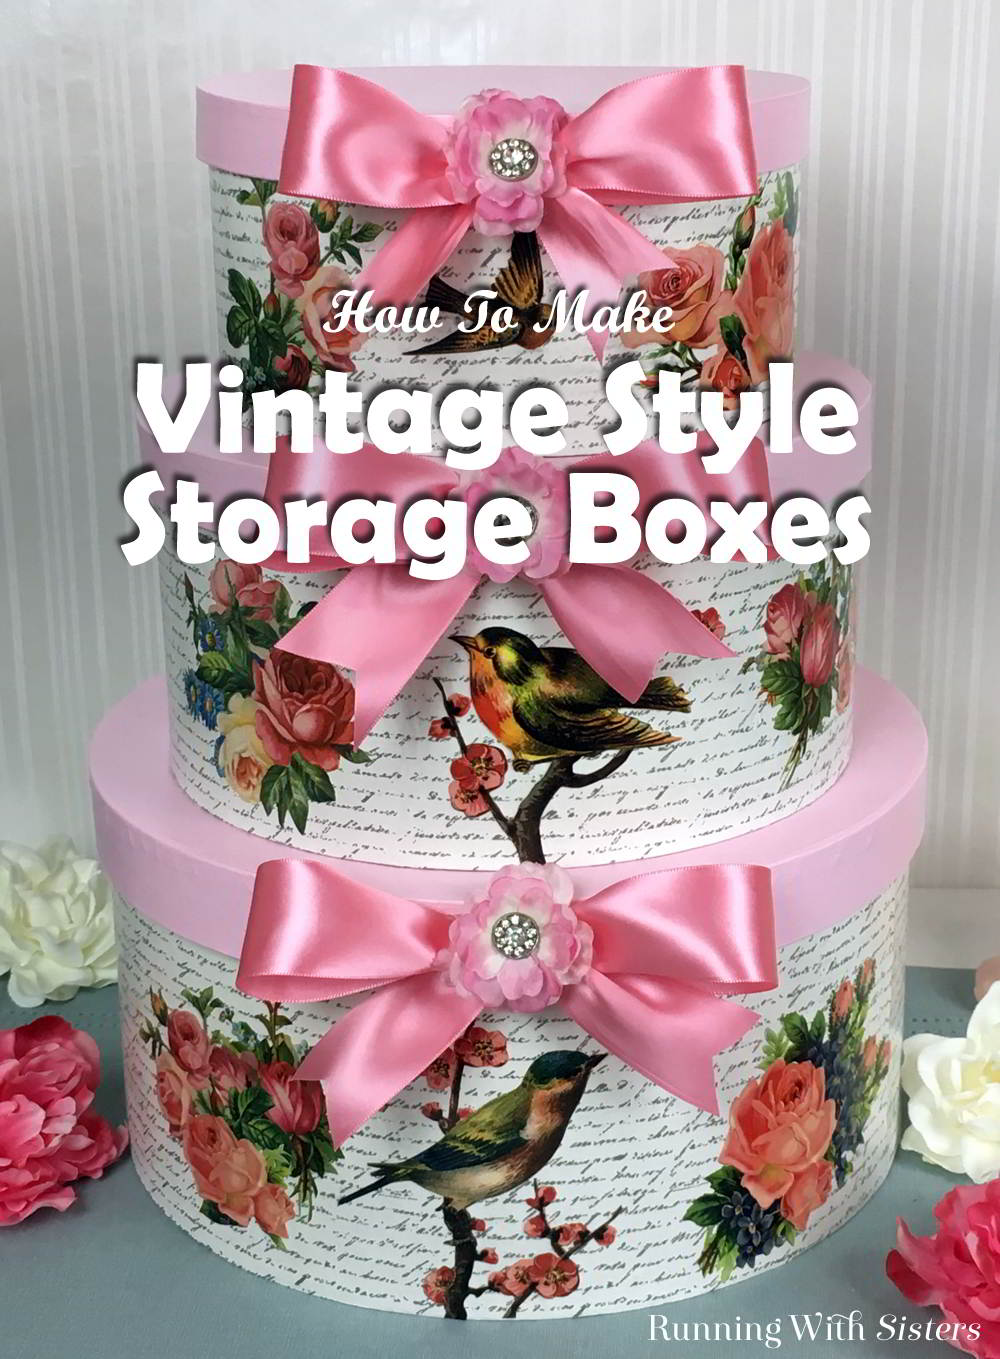 Turn ordinary round hat boxes into Vintage Decorated Storage Boxes! We'll tell you how to decoupage in this craft tutorial featuring clip art and Mod Podge!